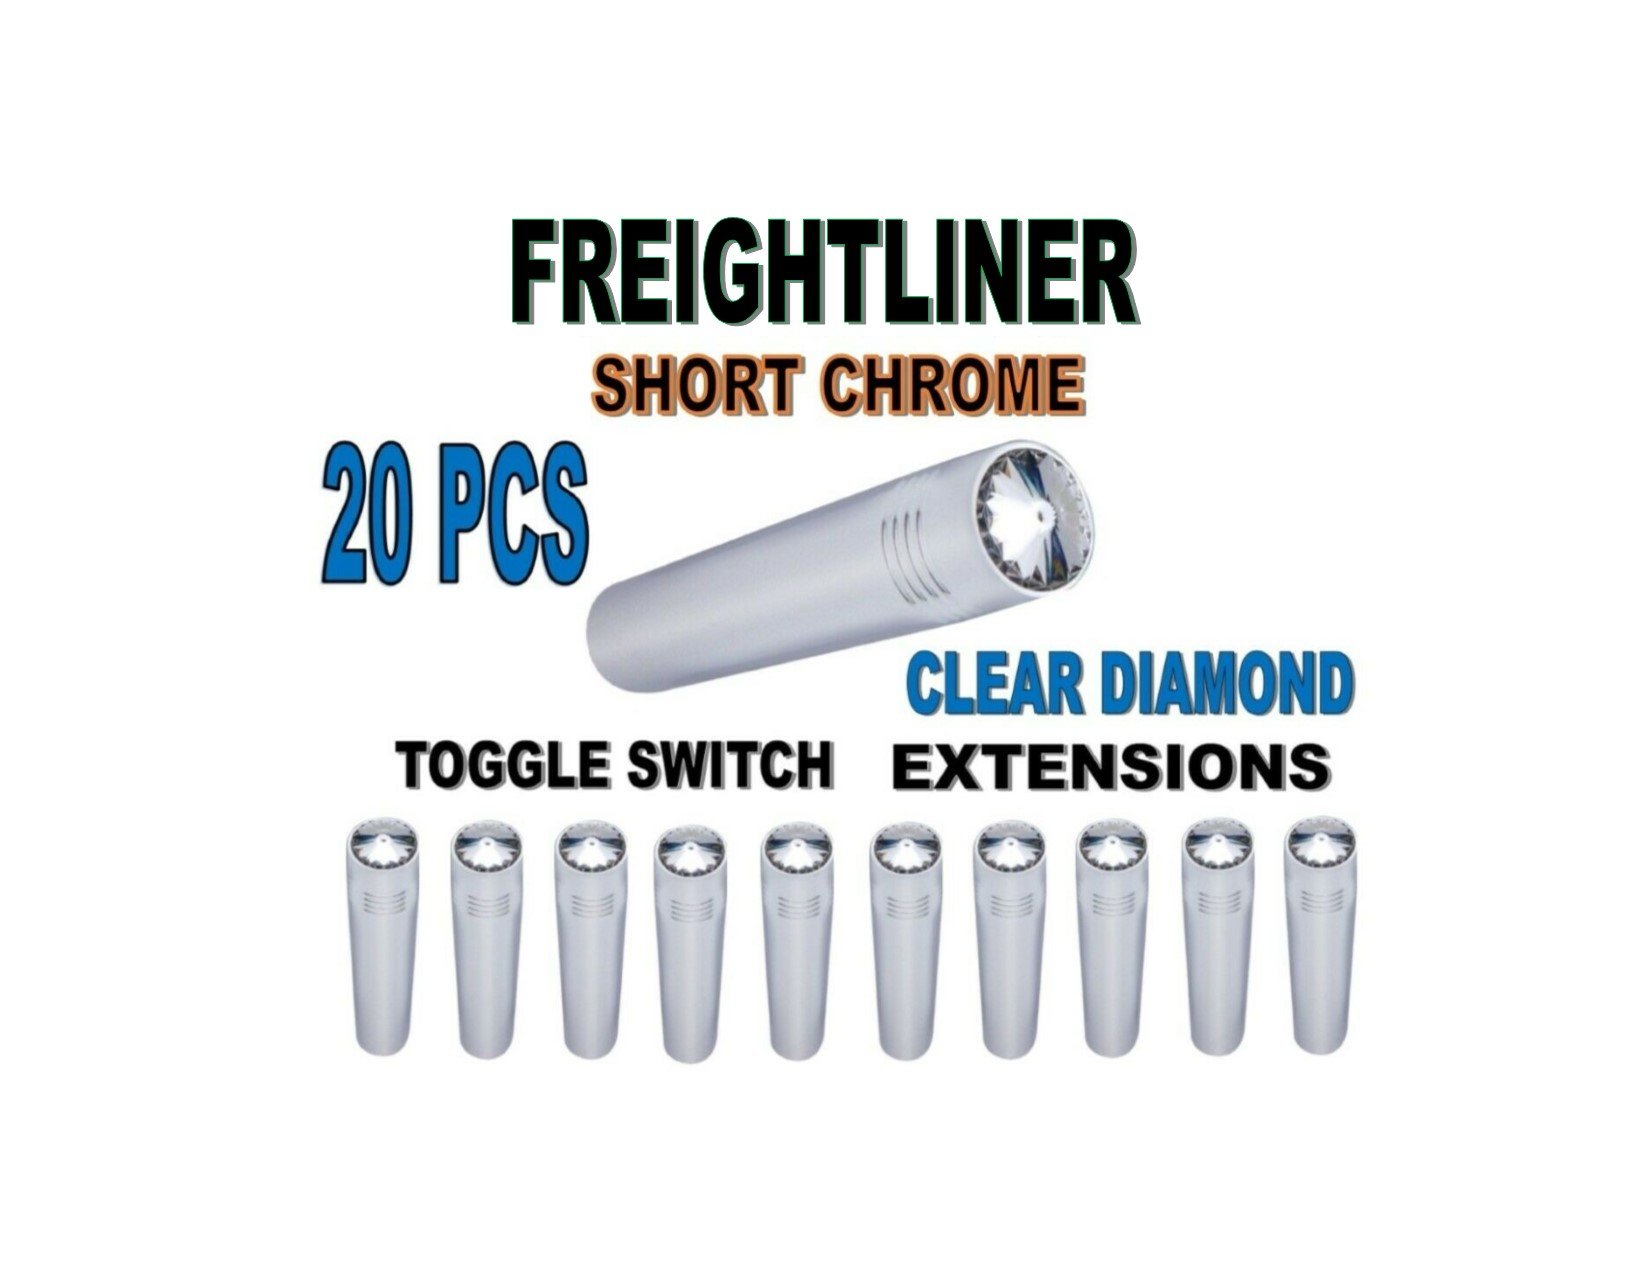 Toggle Switch Ext. Short Chrome - CLEAR Diamond (X20) FREIGHTLINER